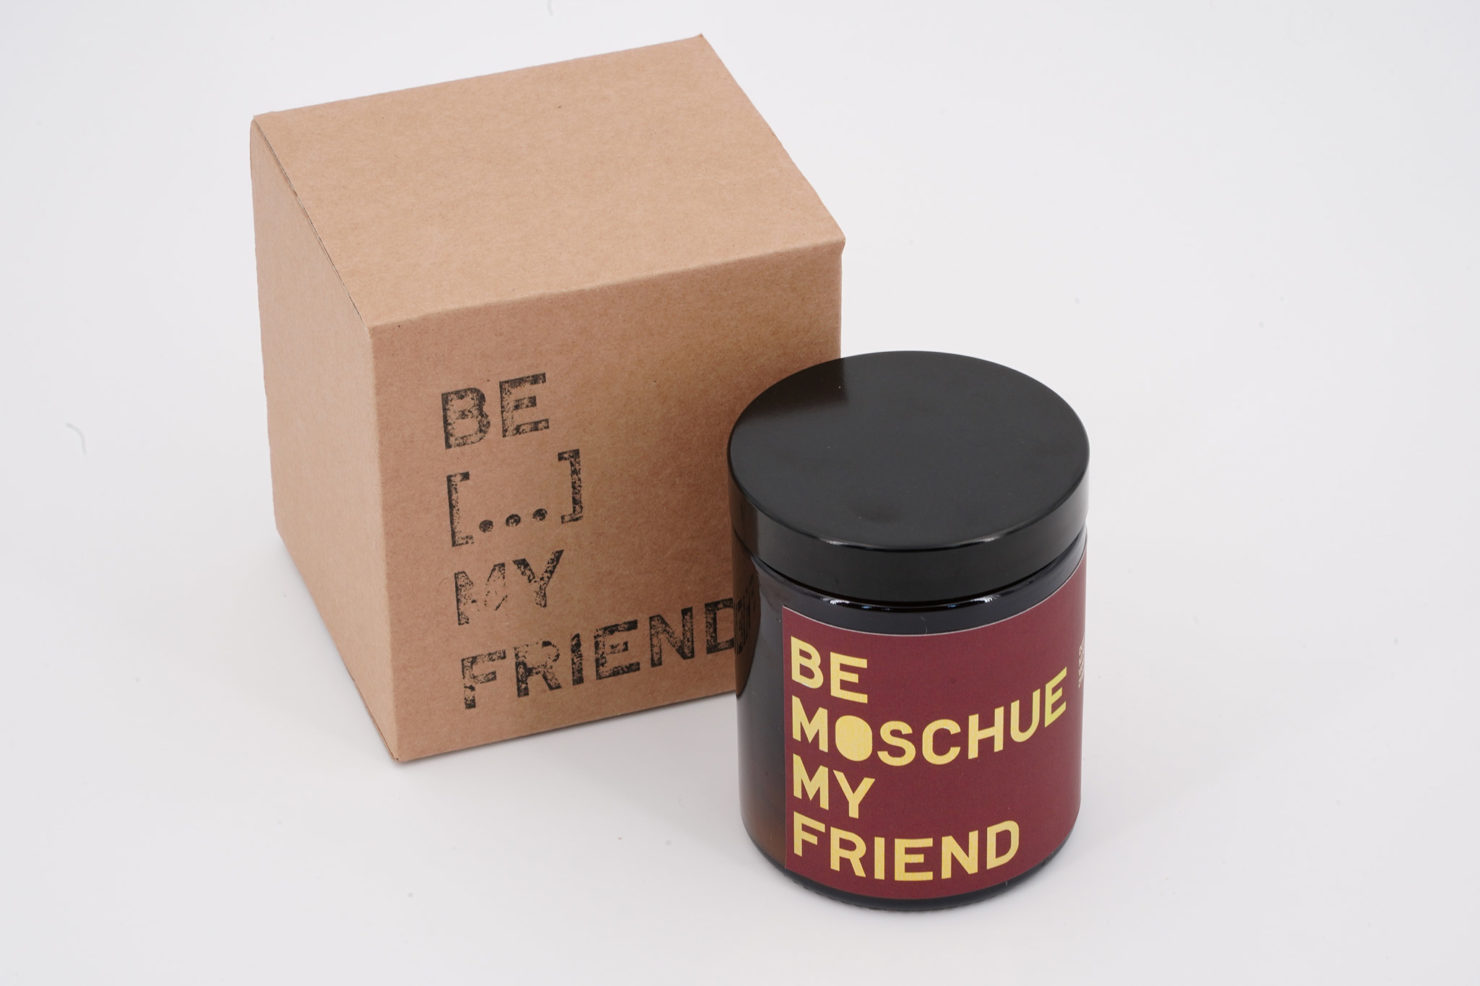 BE LIT&SCENT MY FRIEND MOSCHUE 180ML BE MY FRIEND